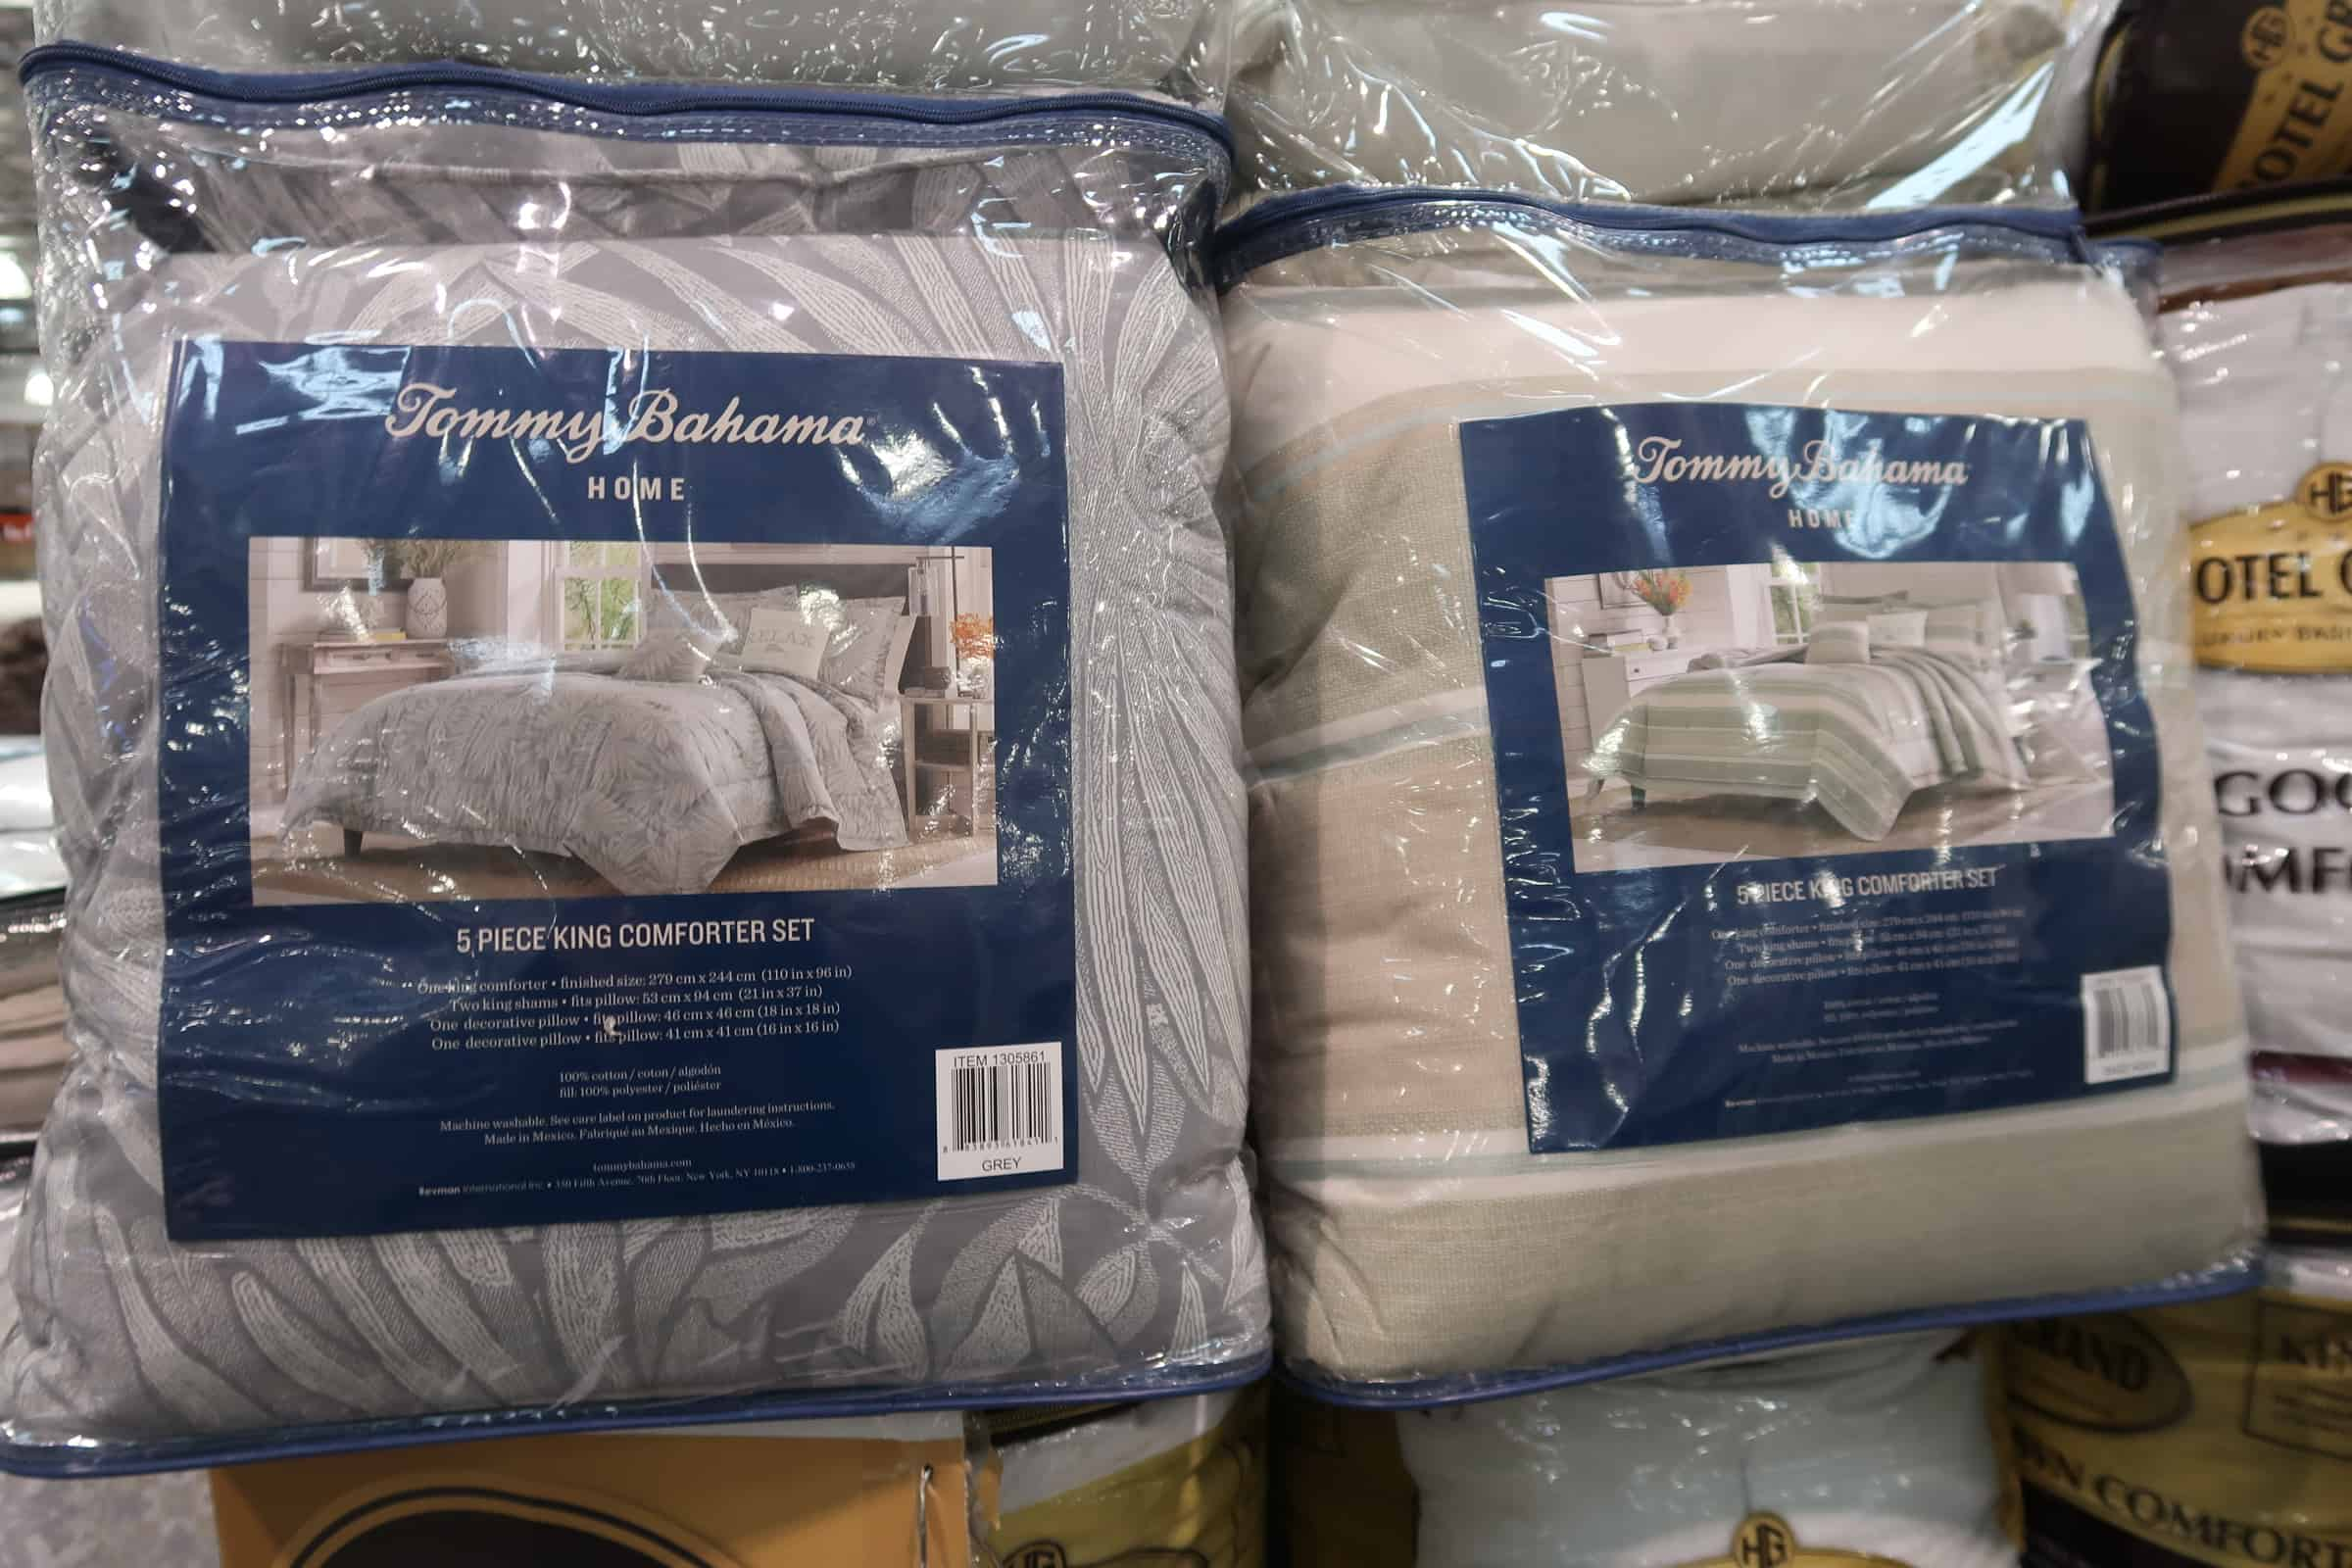 Tommy Bahama 5 Pc. Comforter Set King $59.97